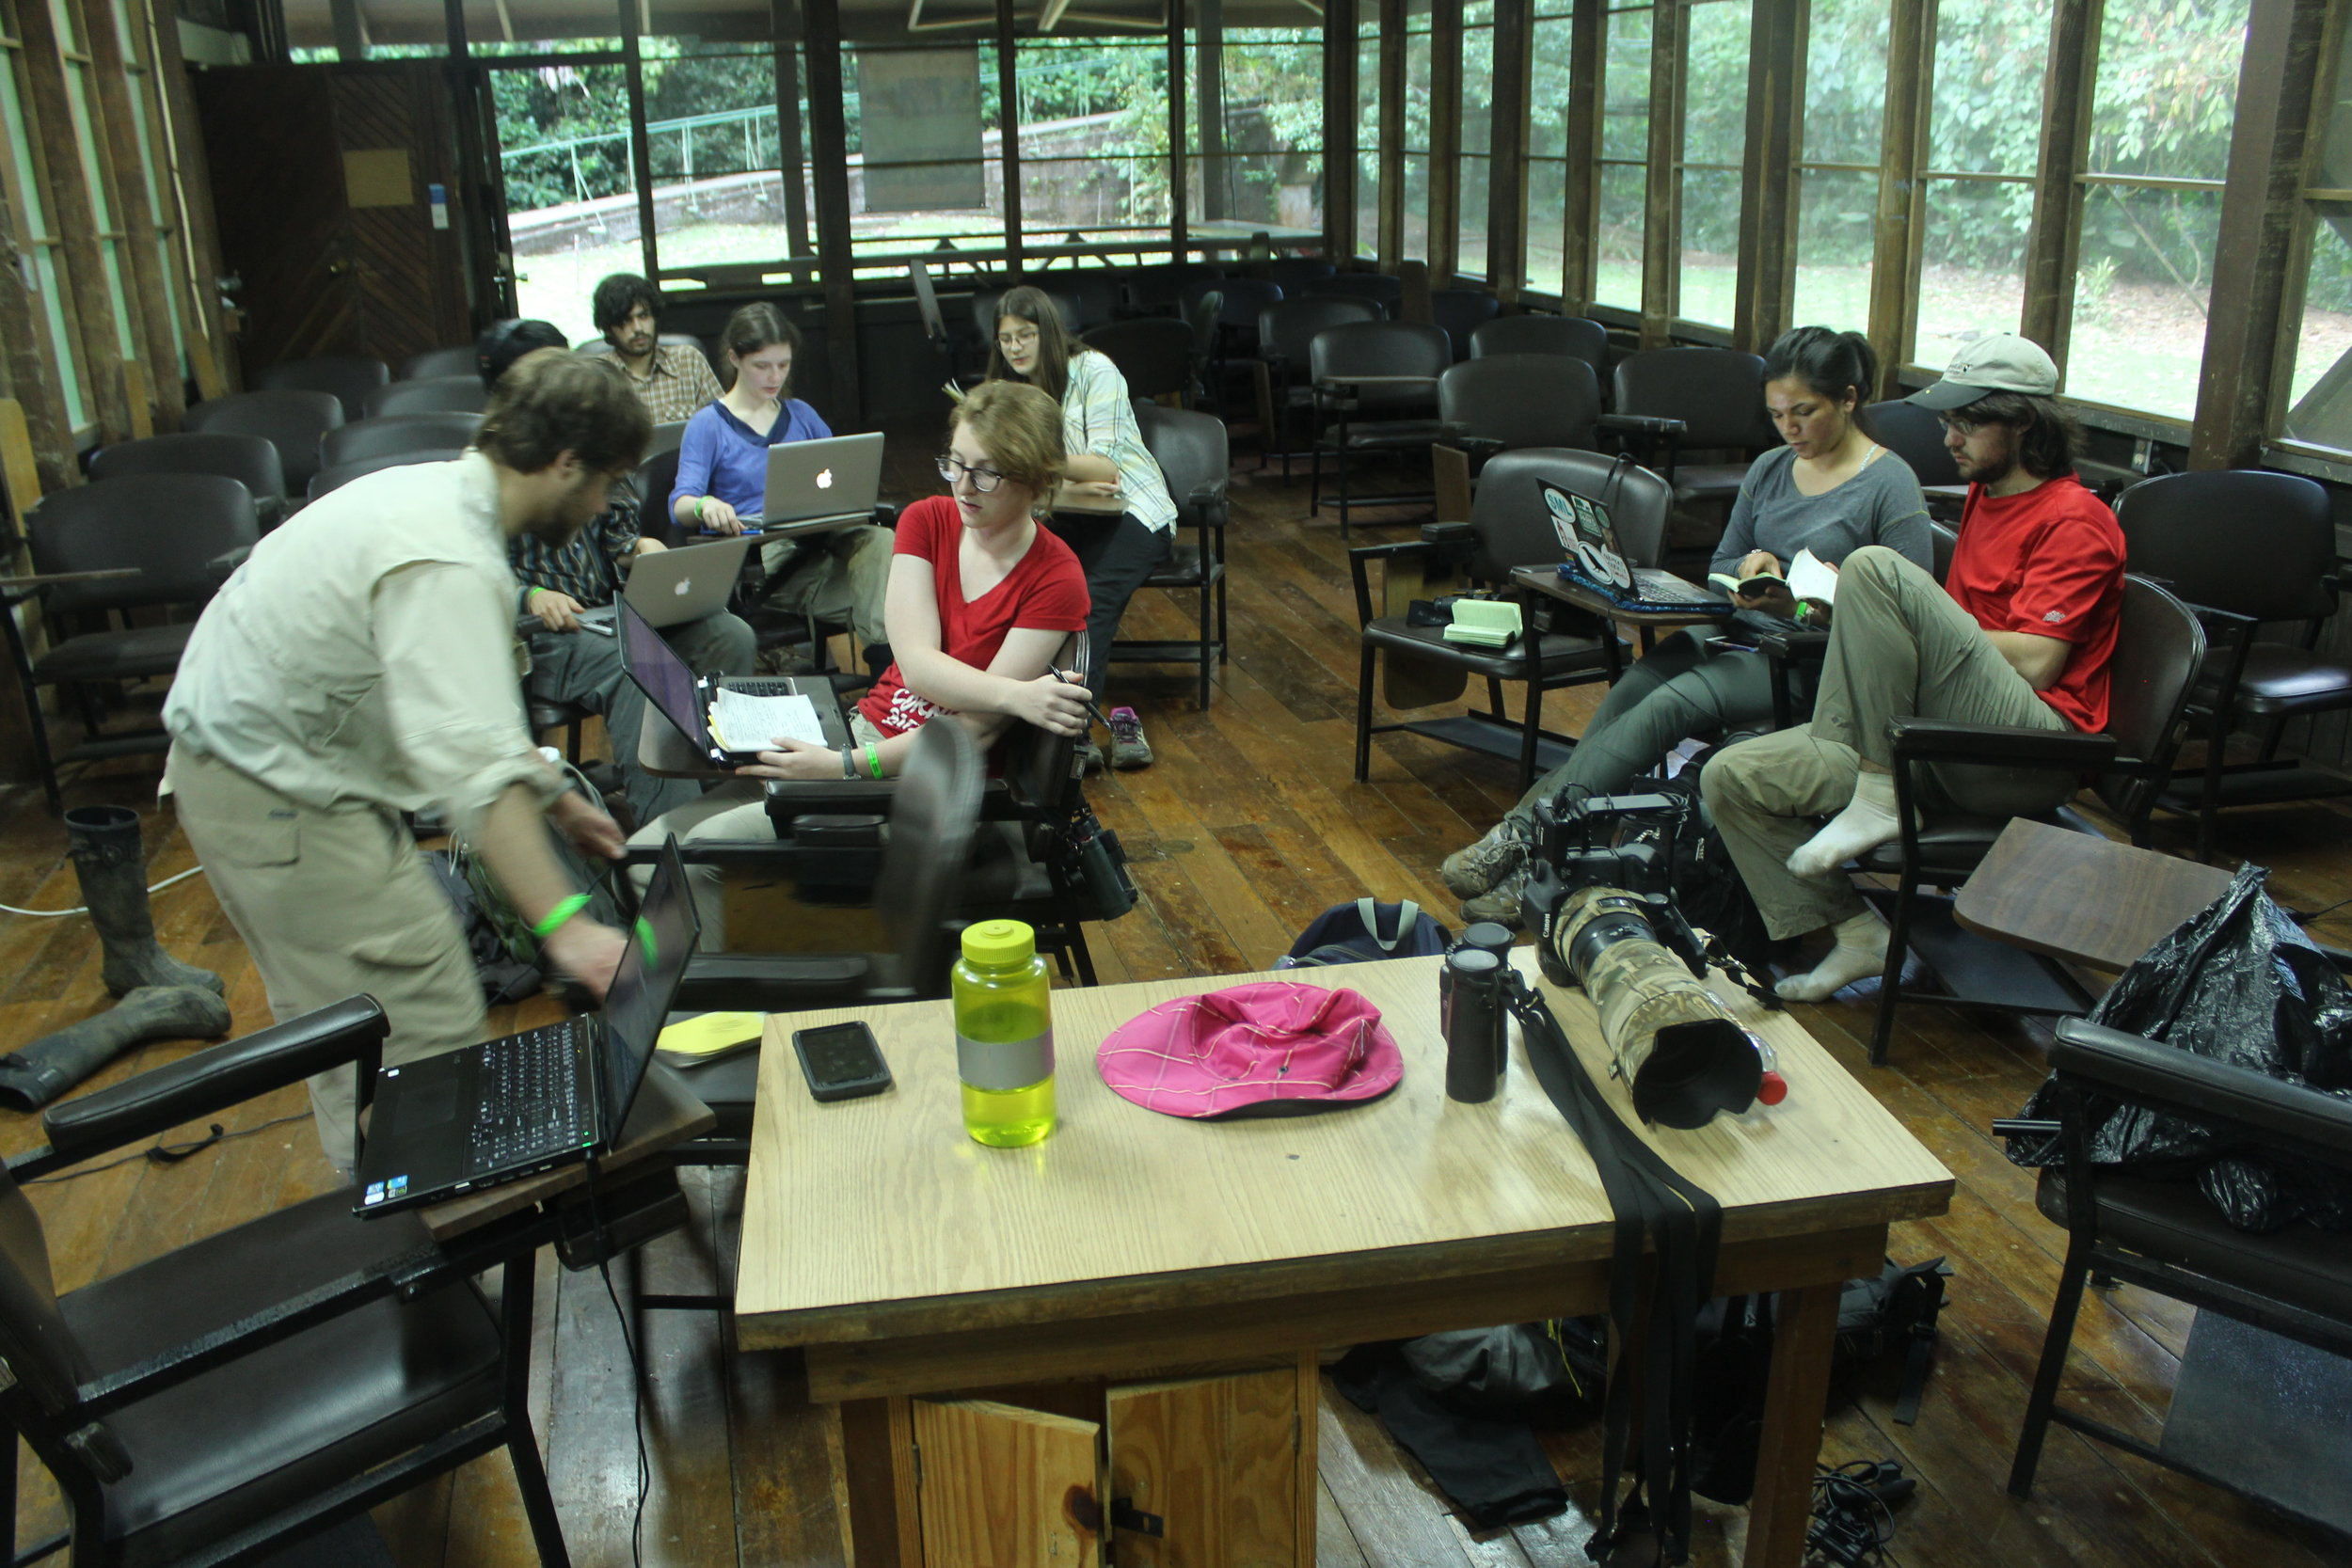 …and then back in the classroom, talking about what to do with the data from the field